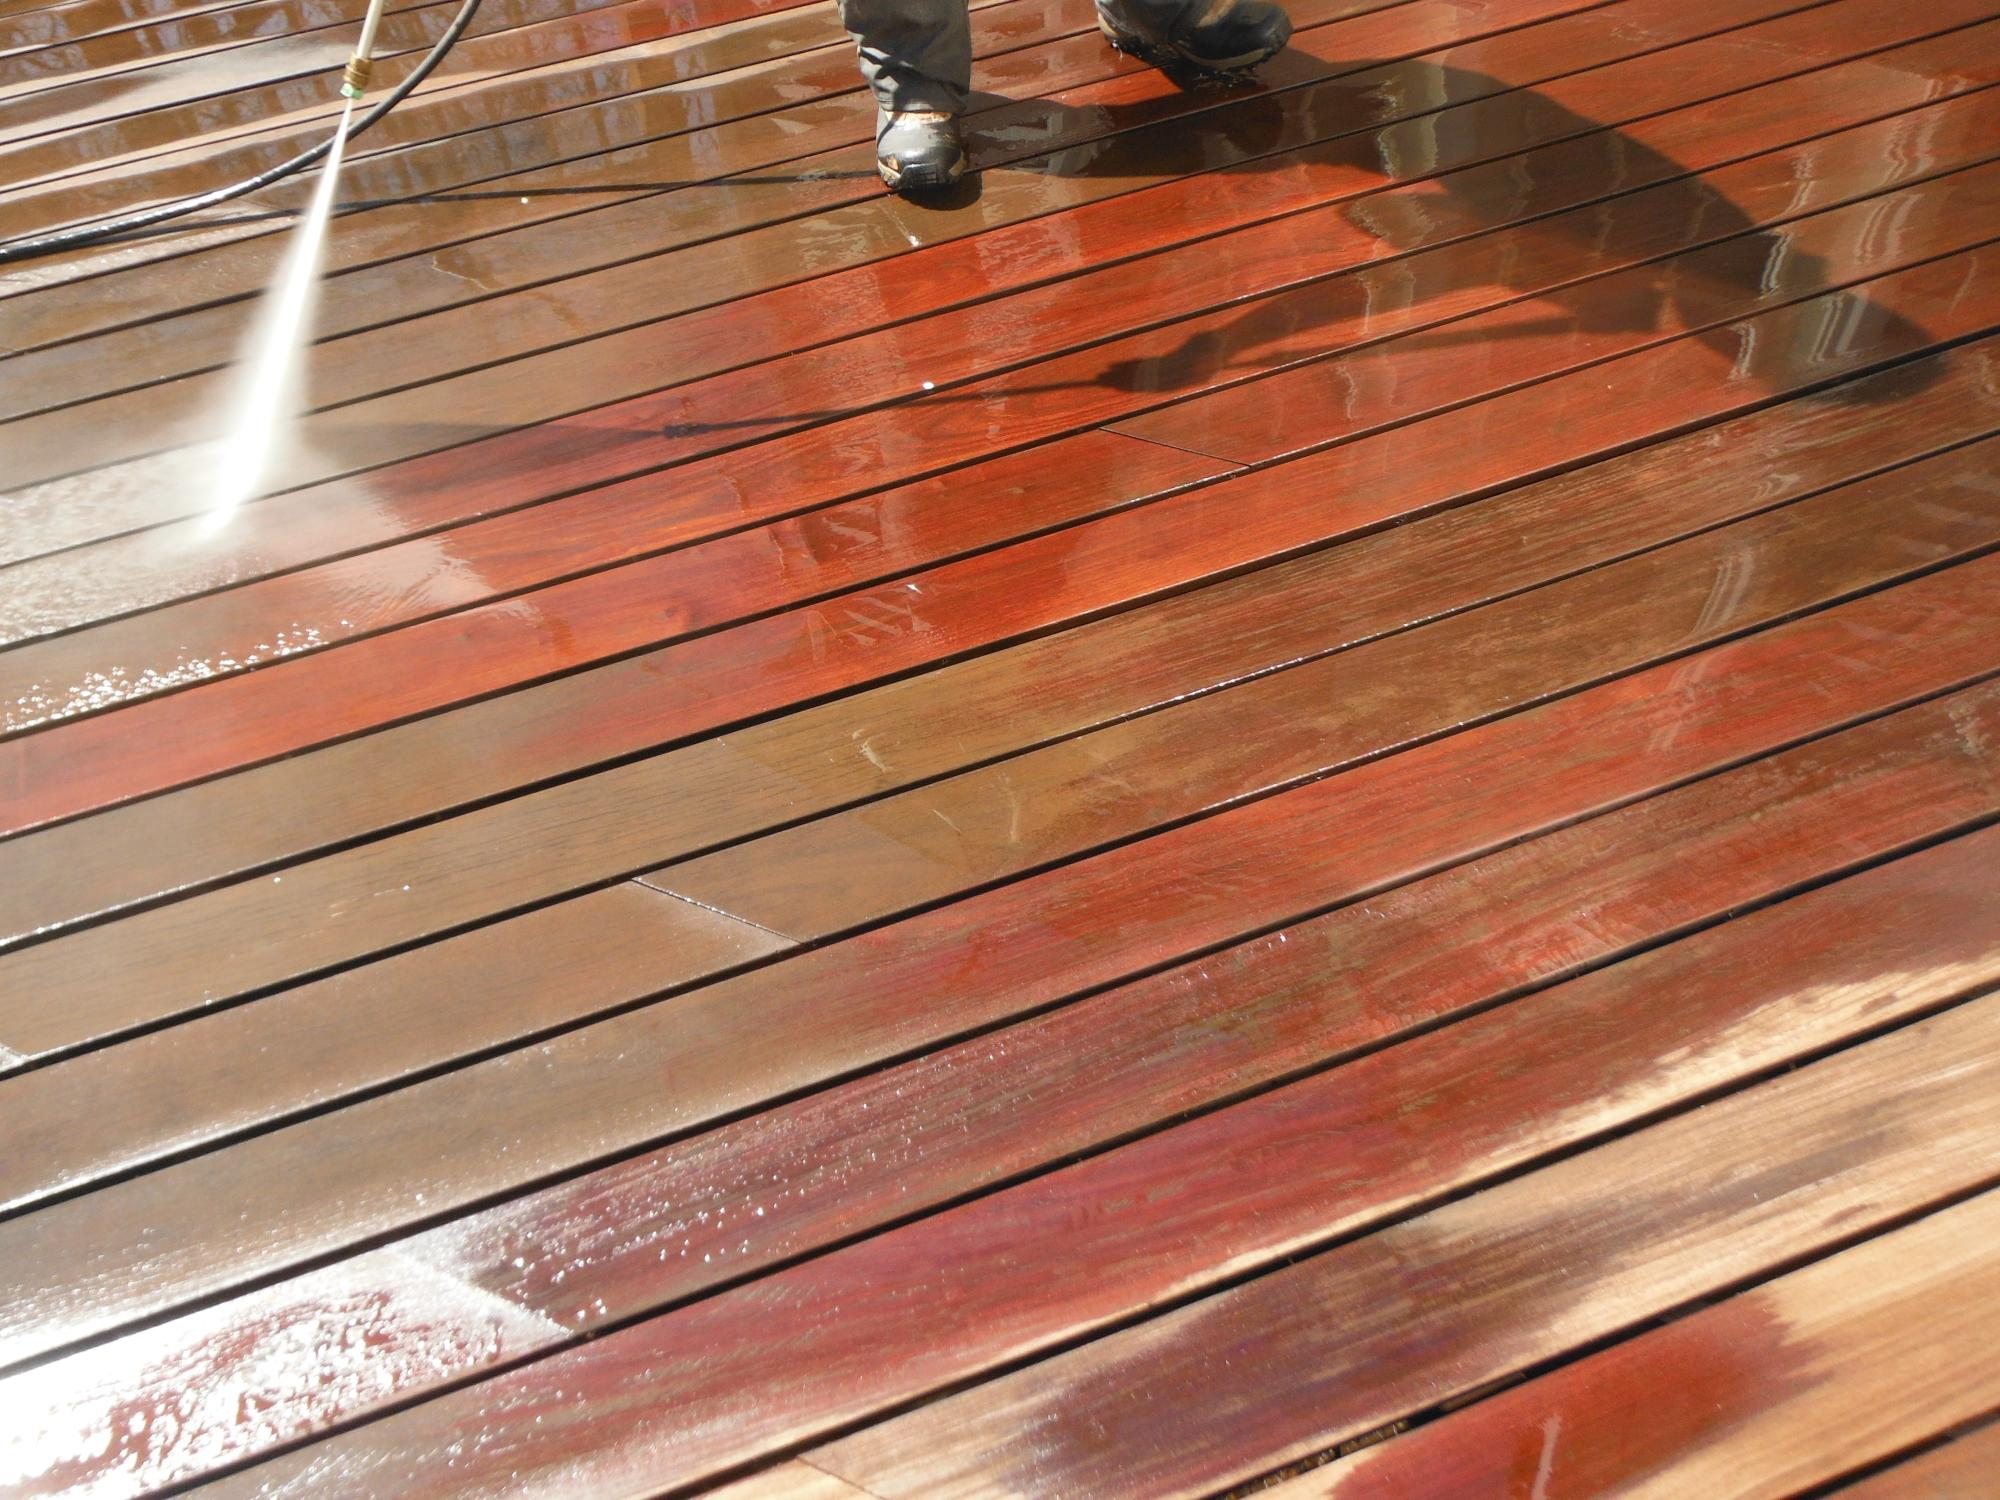 Power washing IPE deck